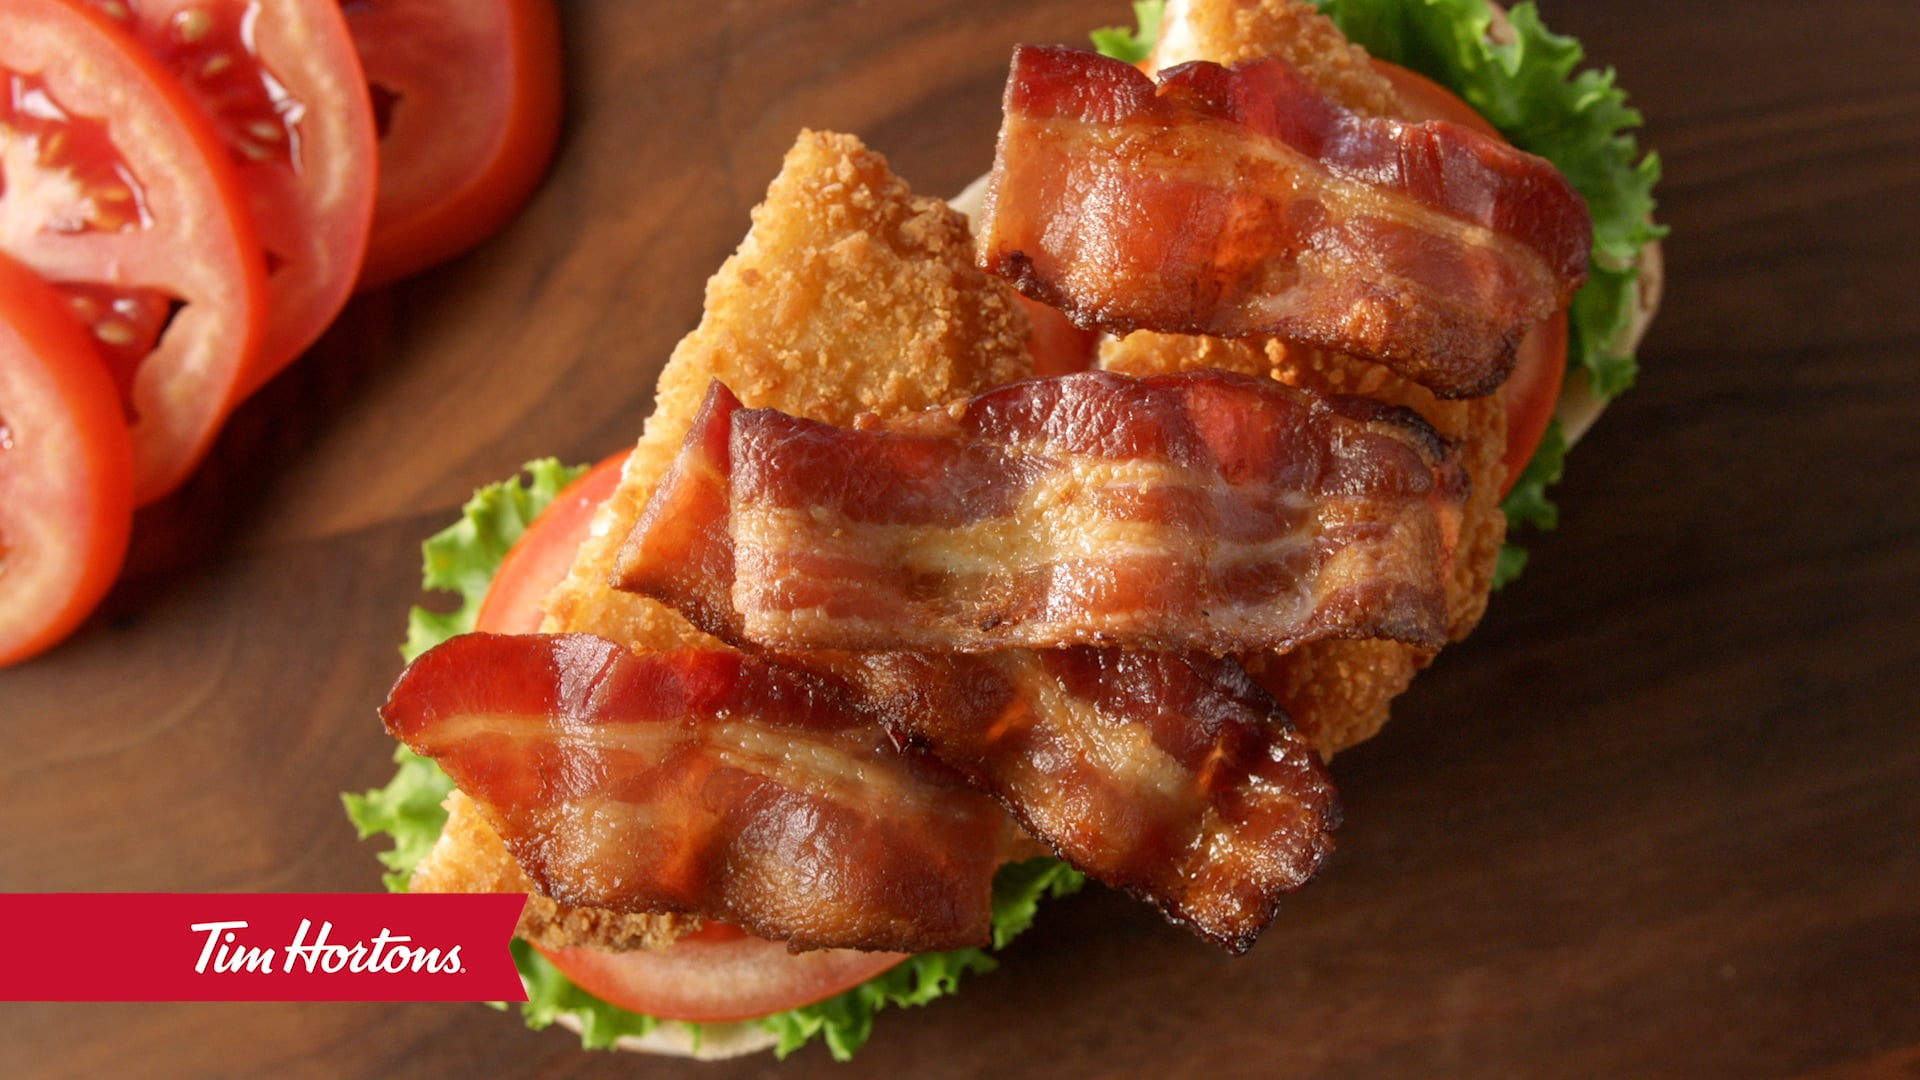 BOUT THAT BACON